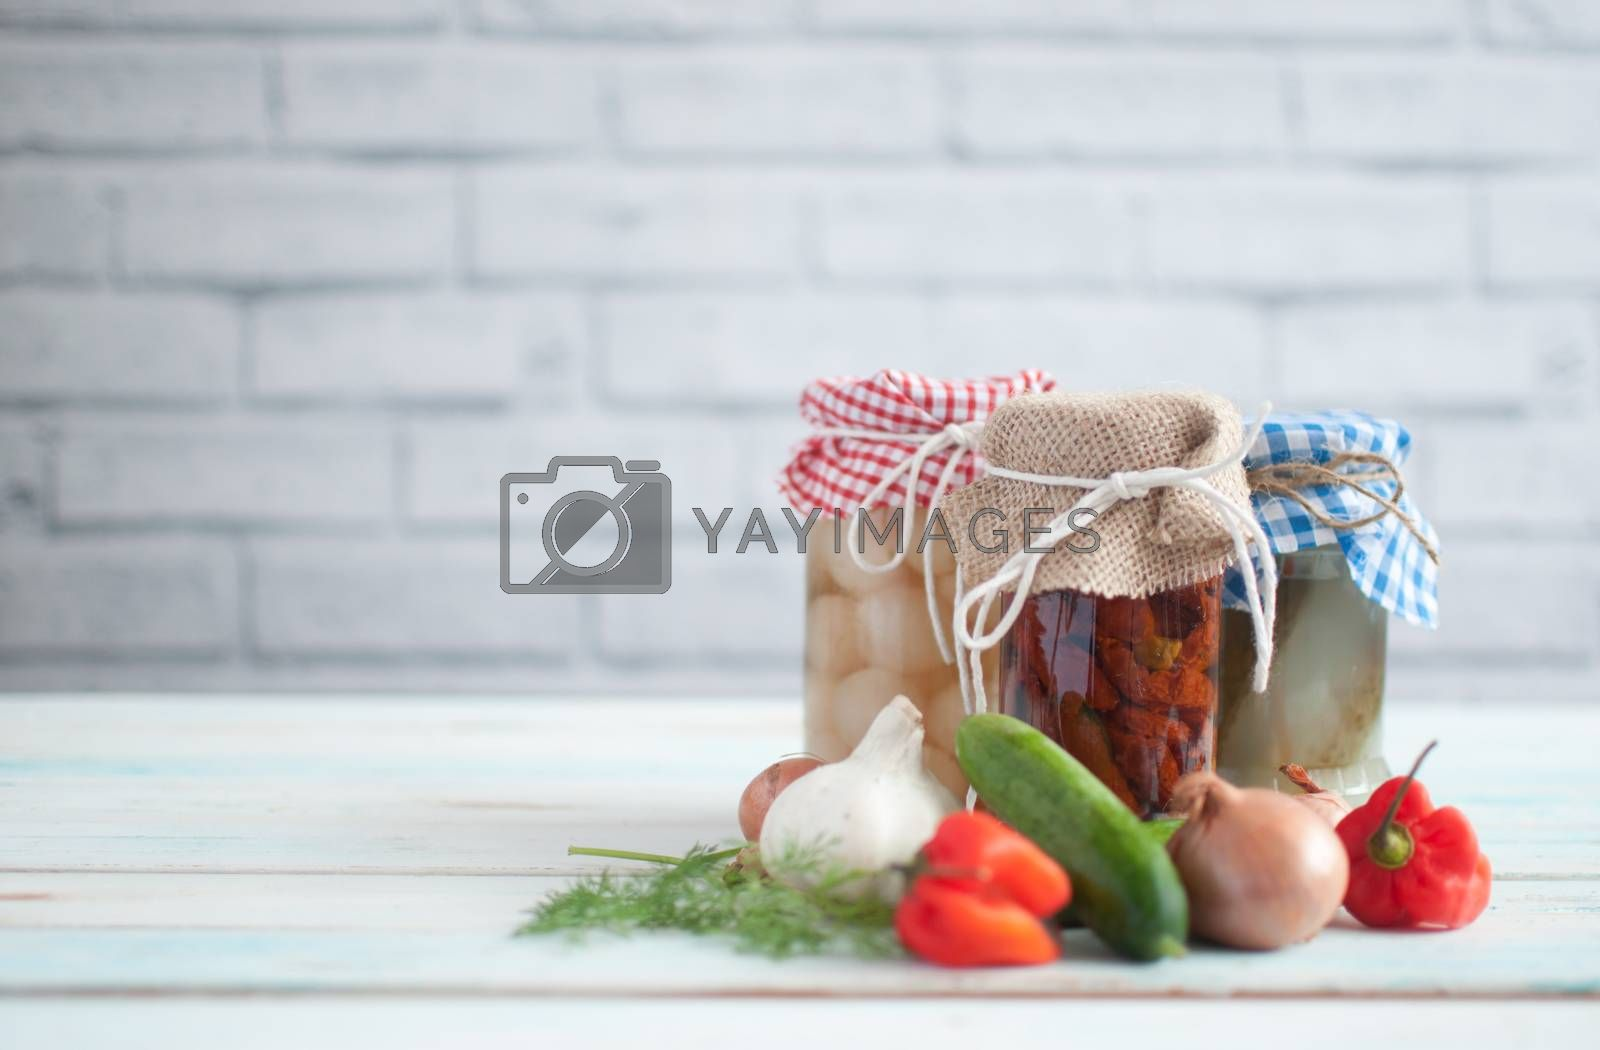 Royalty free image of Fermented prebiotic foods by unikpix